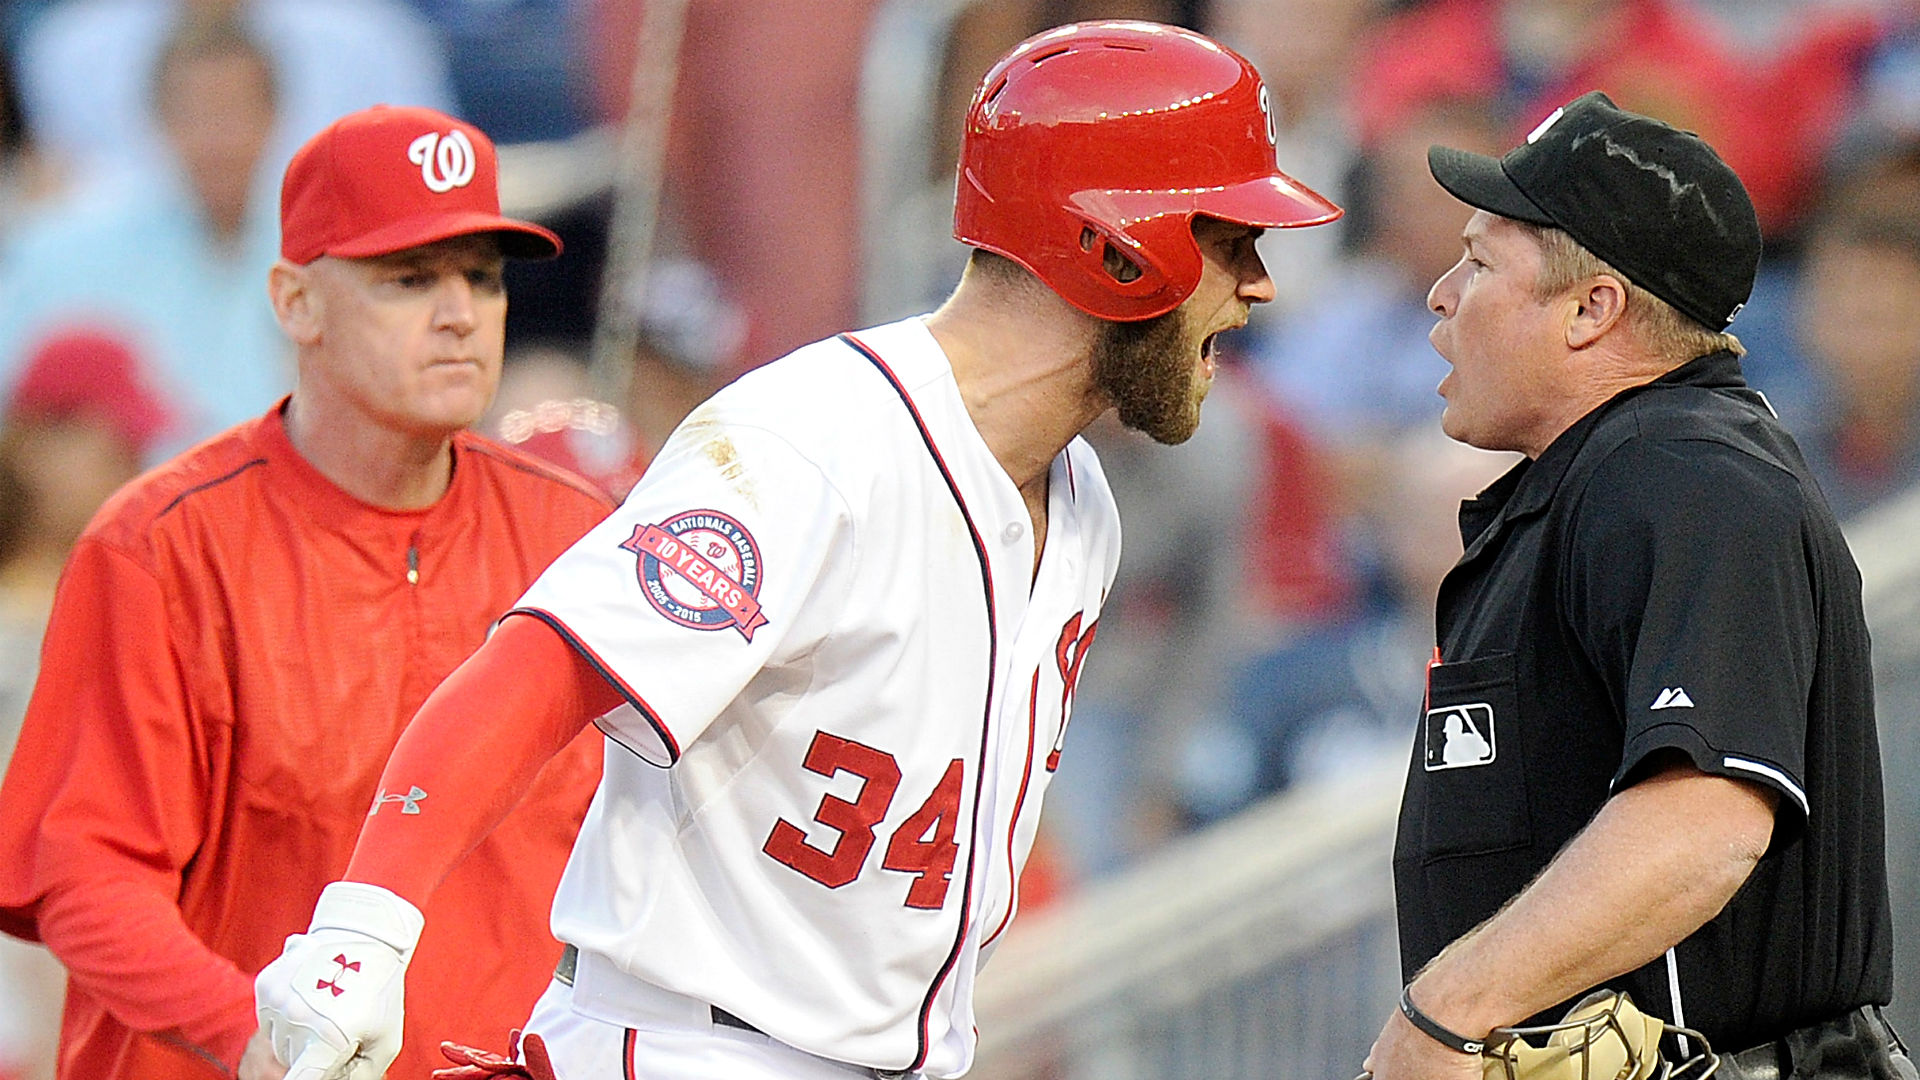 Galerry Other MLB Nightly 9 Nationals officials upset with ump over